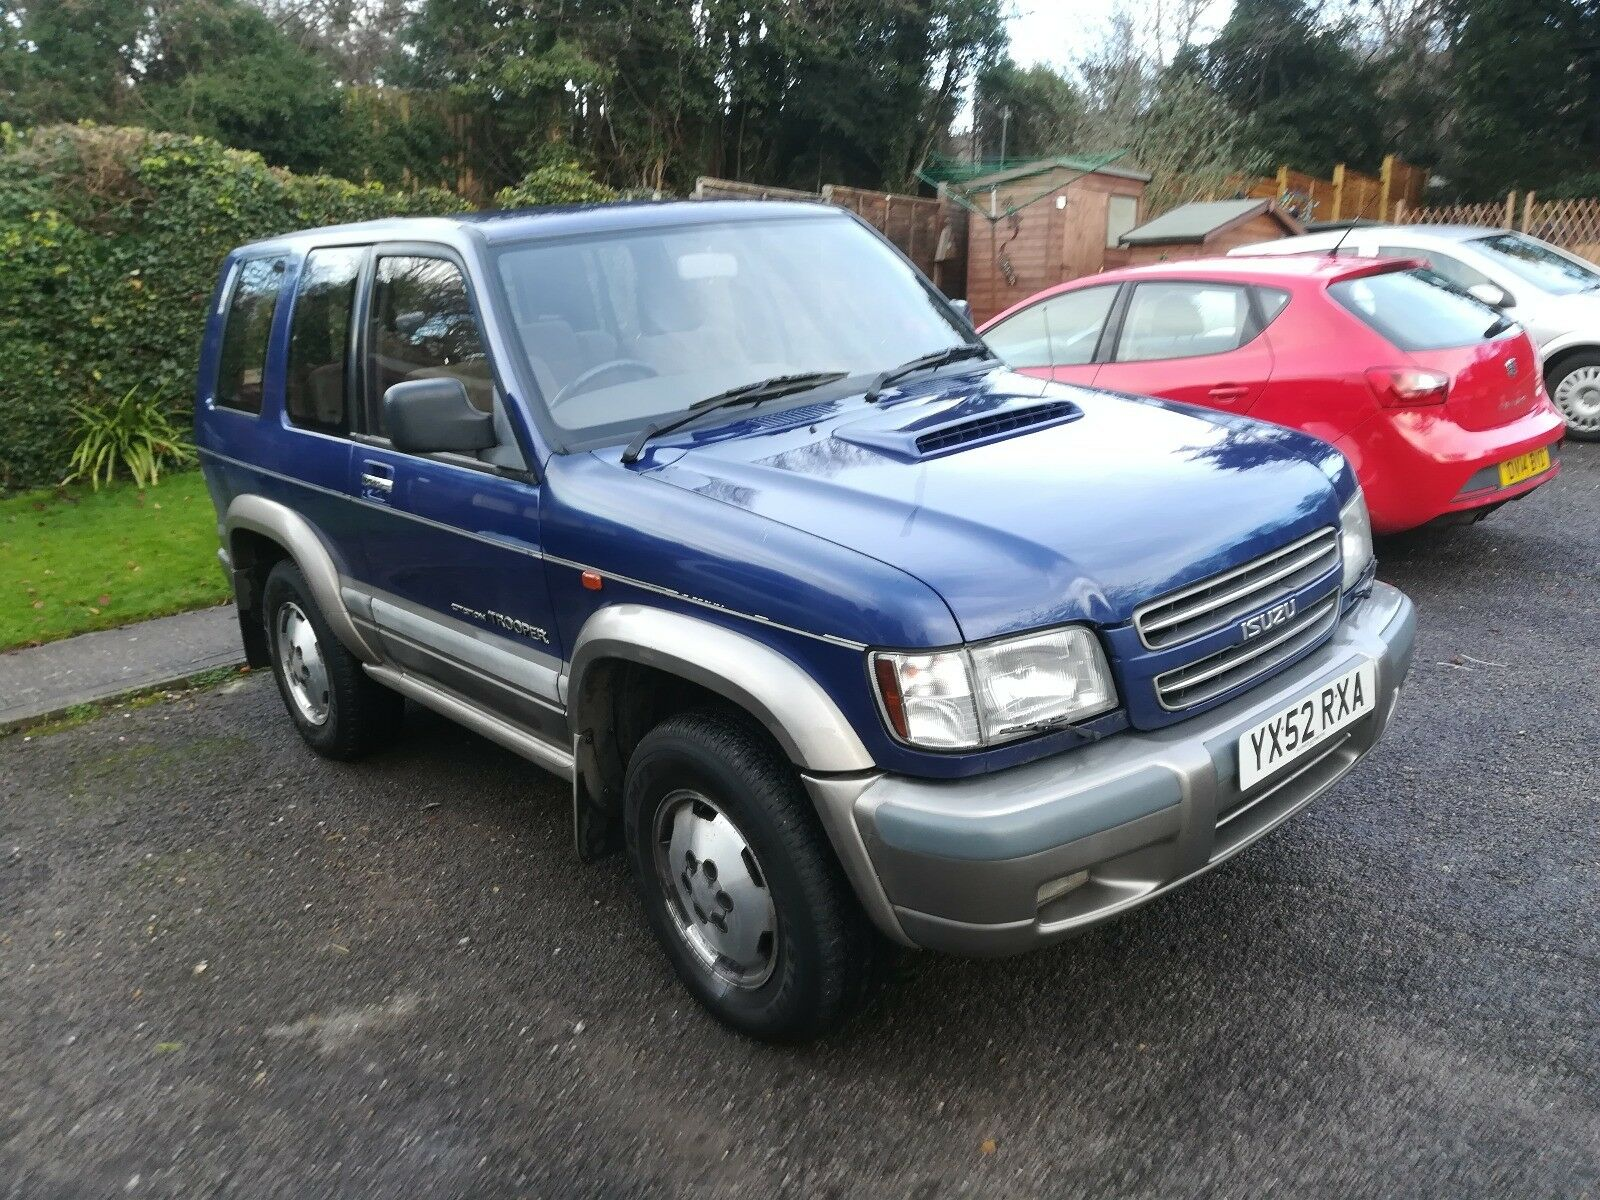 isuzu trooper citation swb - £1,950.00 | picclick uk